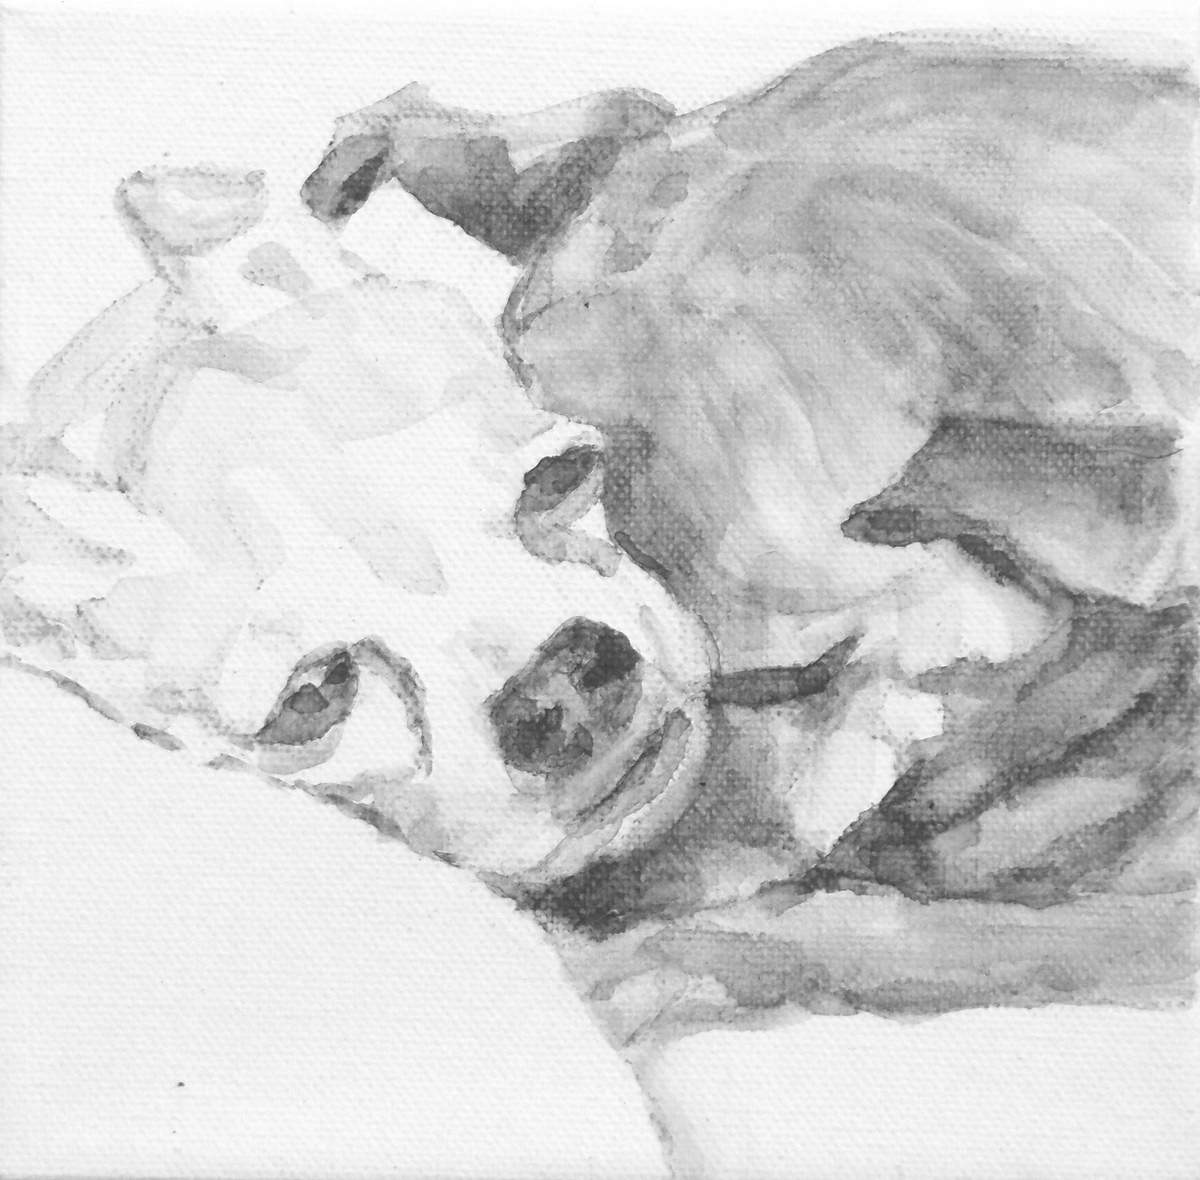 intimate portrait of two Chihuahua dogs snuggling. Black and white acrylic painting by Elizabeth Lisa Petrulis.